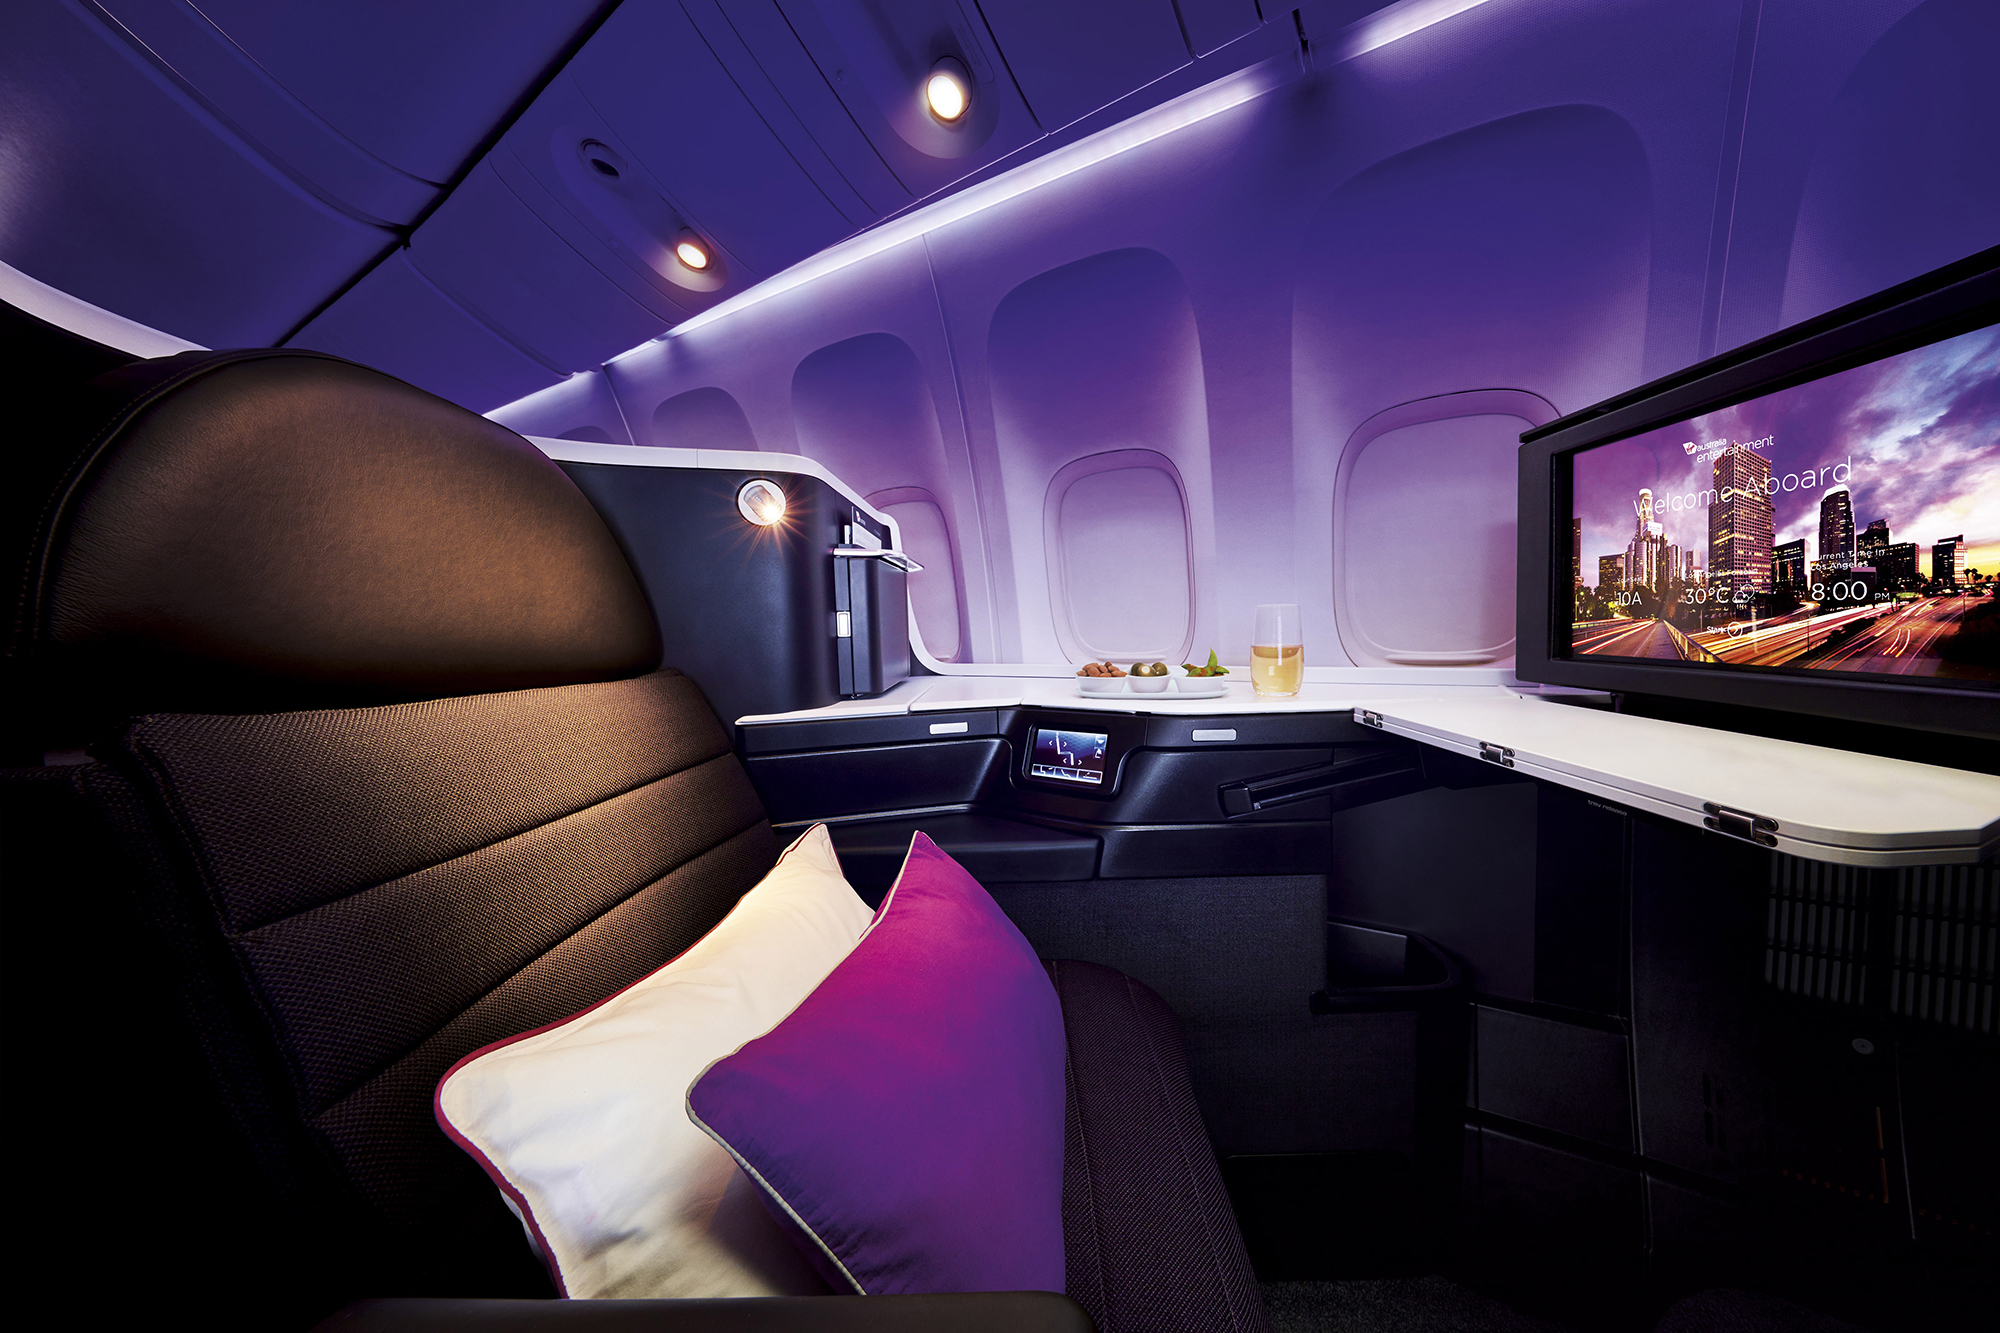 Virgin Australia 777 Business (Virgin Australia Airlines)